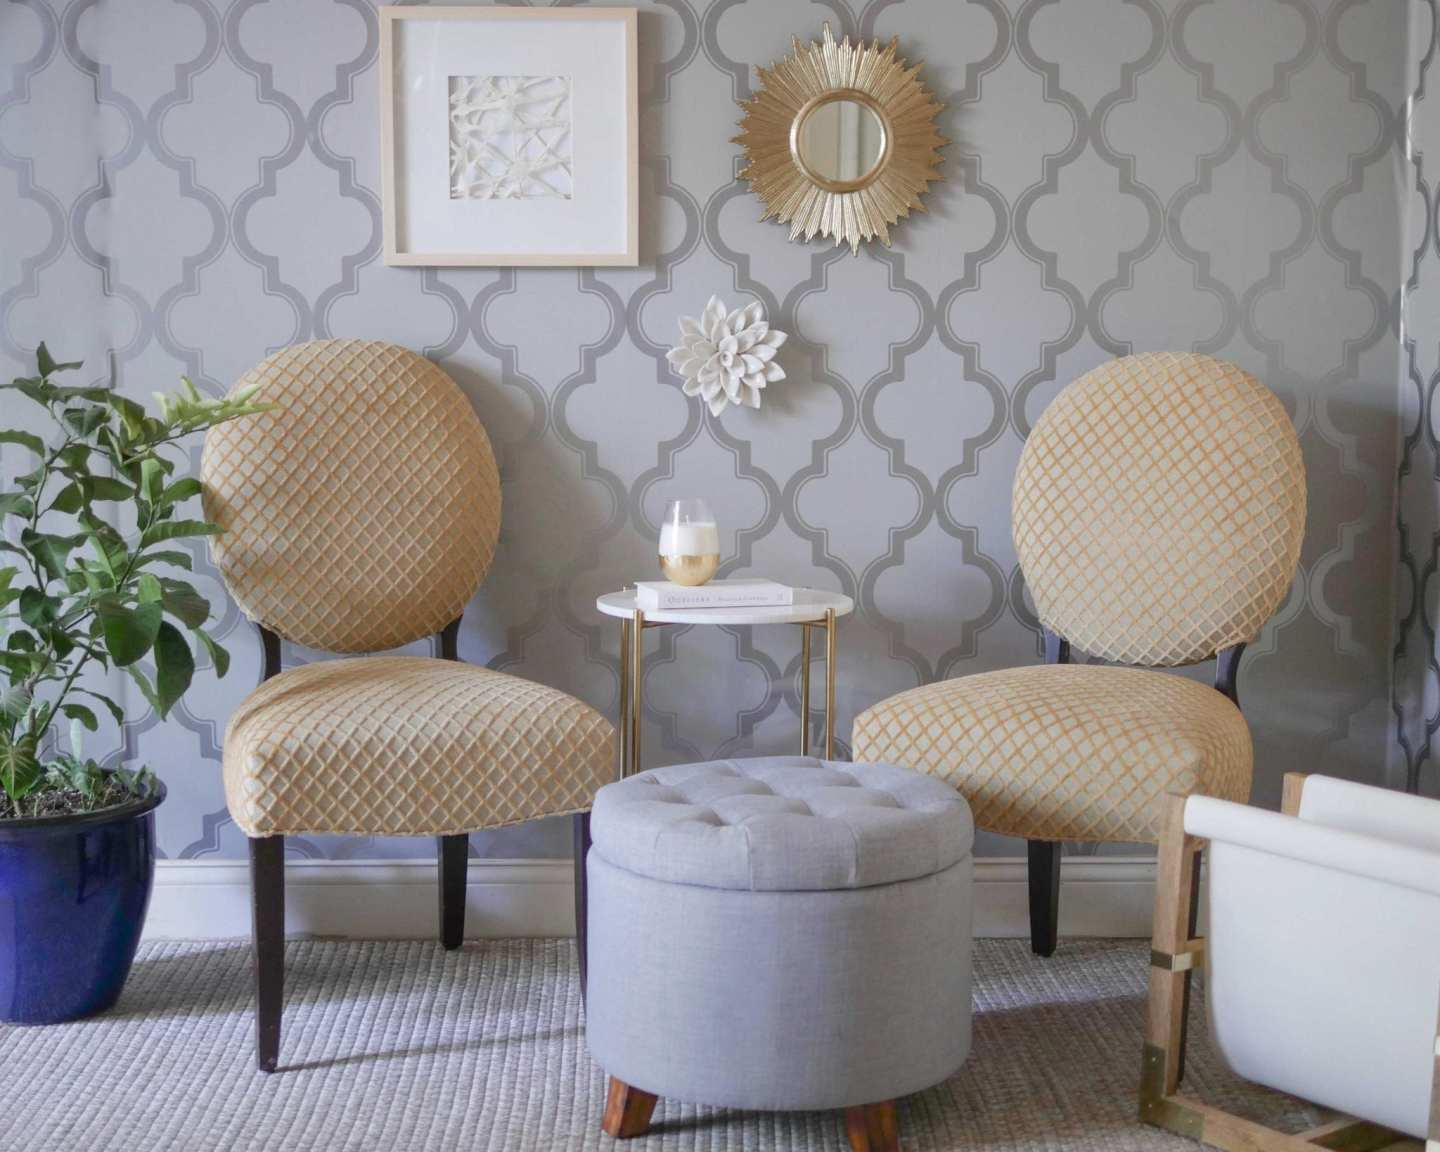 Nate Burkus Home at Target with pieces in a living room with removable wallpaper